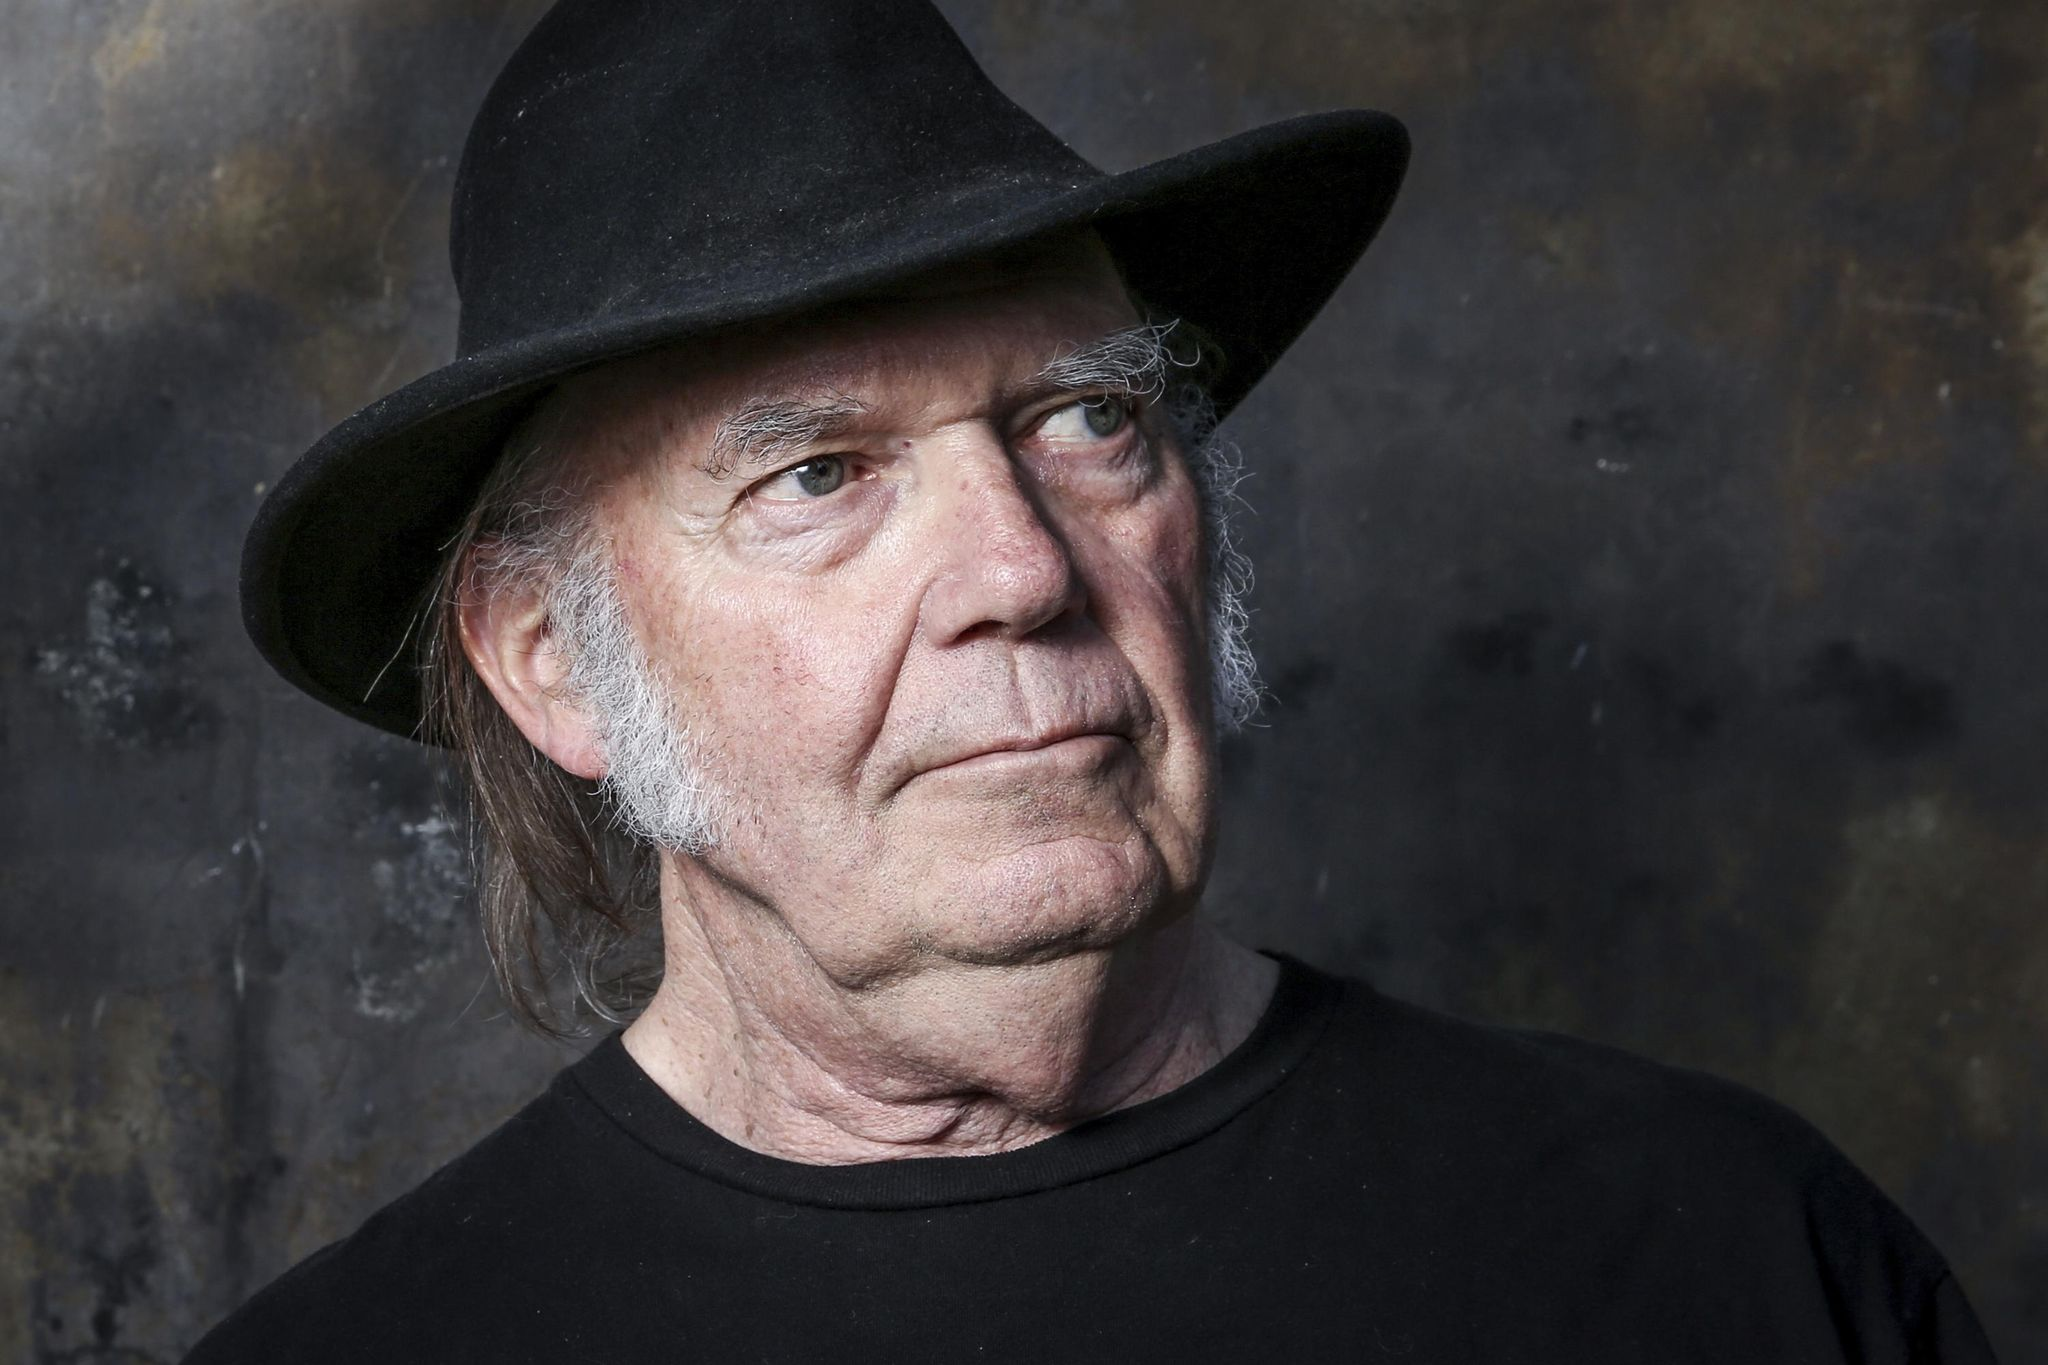 Neil Young rips Donald Trump over unauthorized use of 'Rockin' in the Free World' at rallies